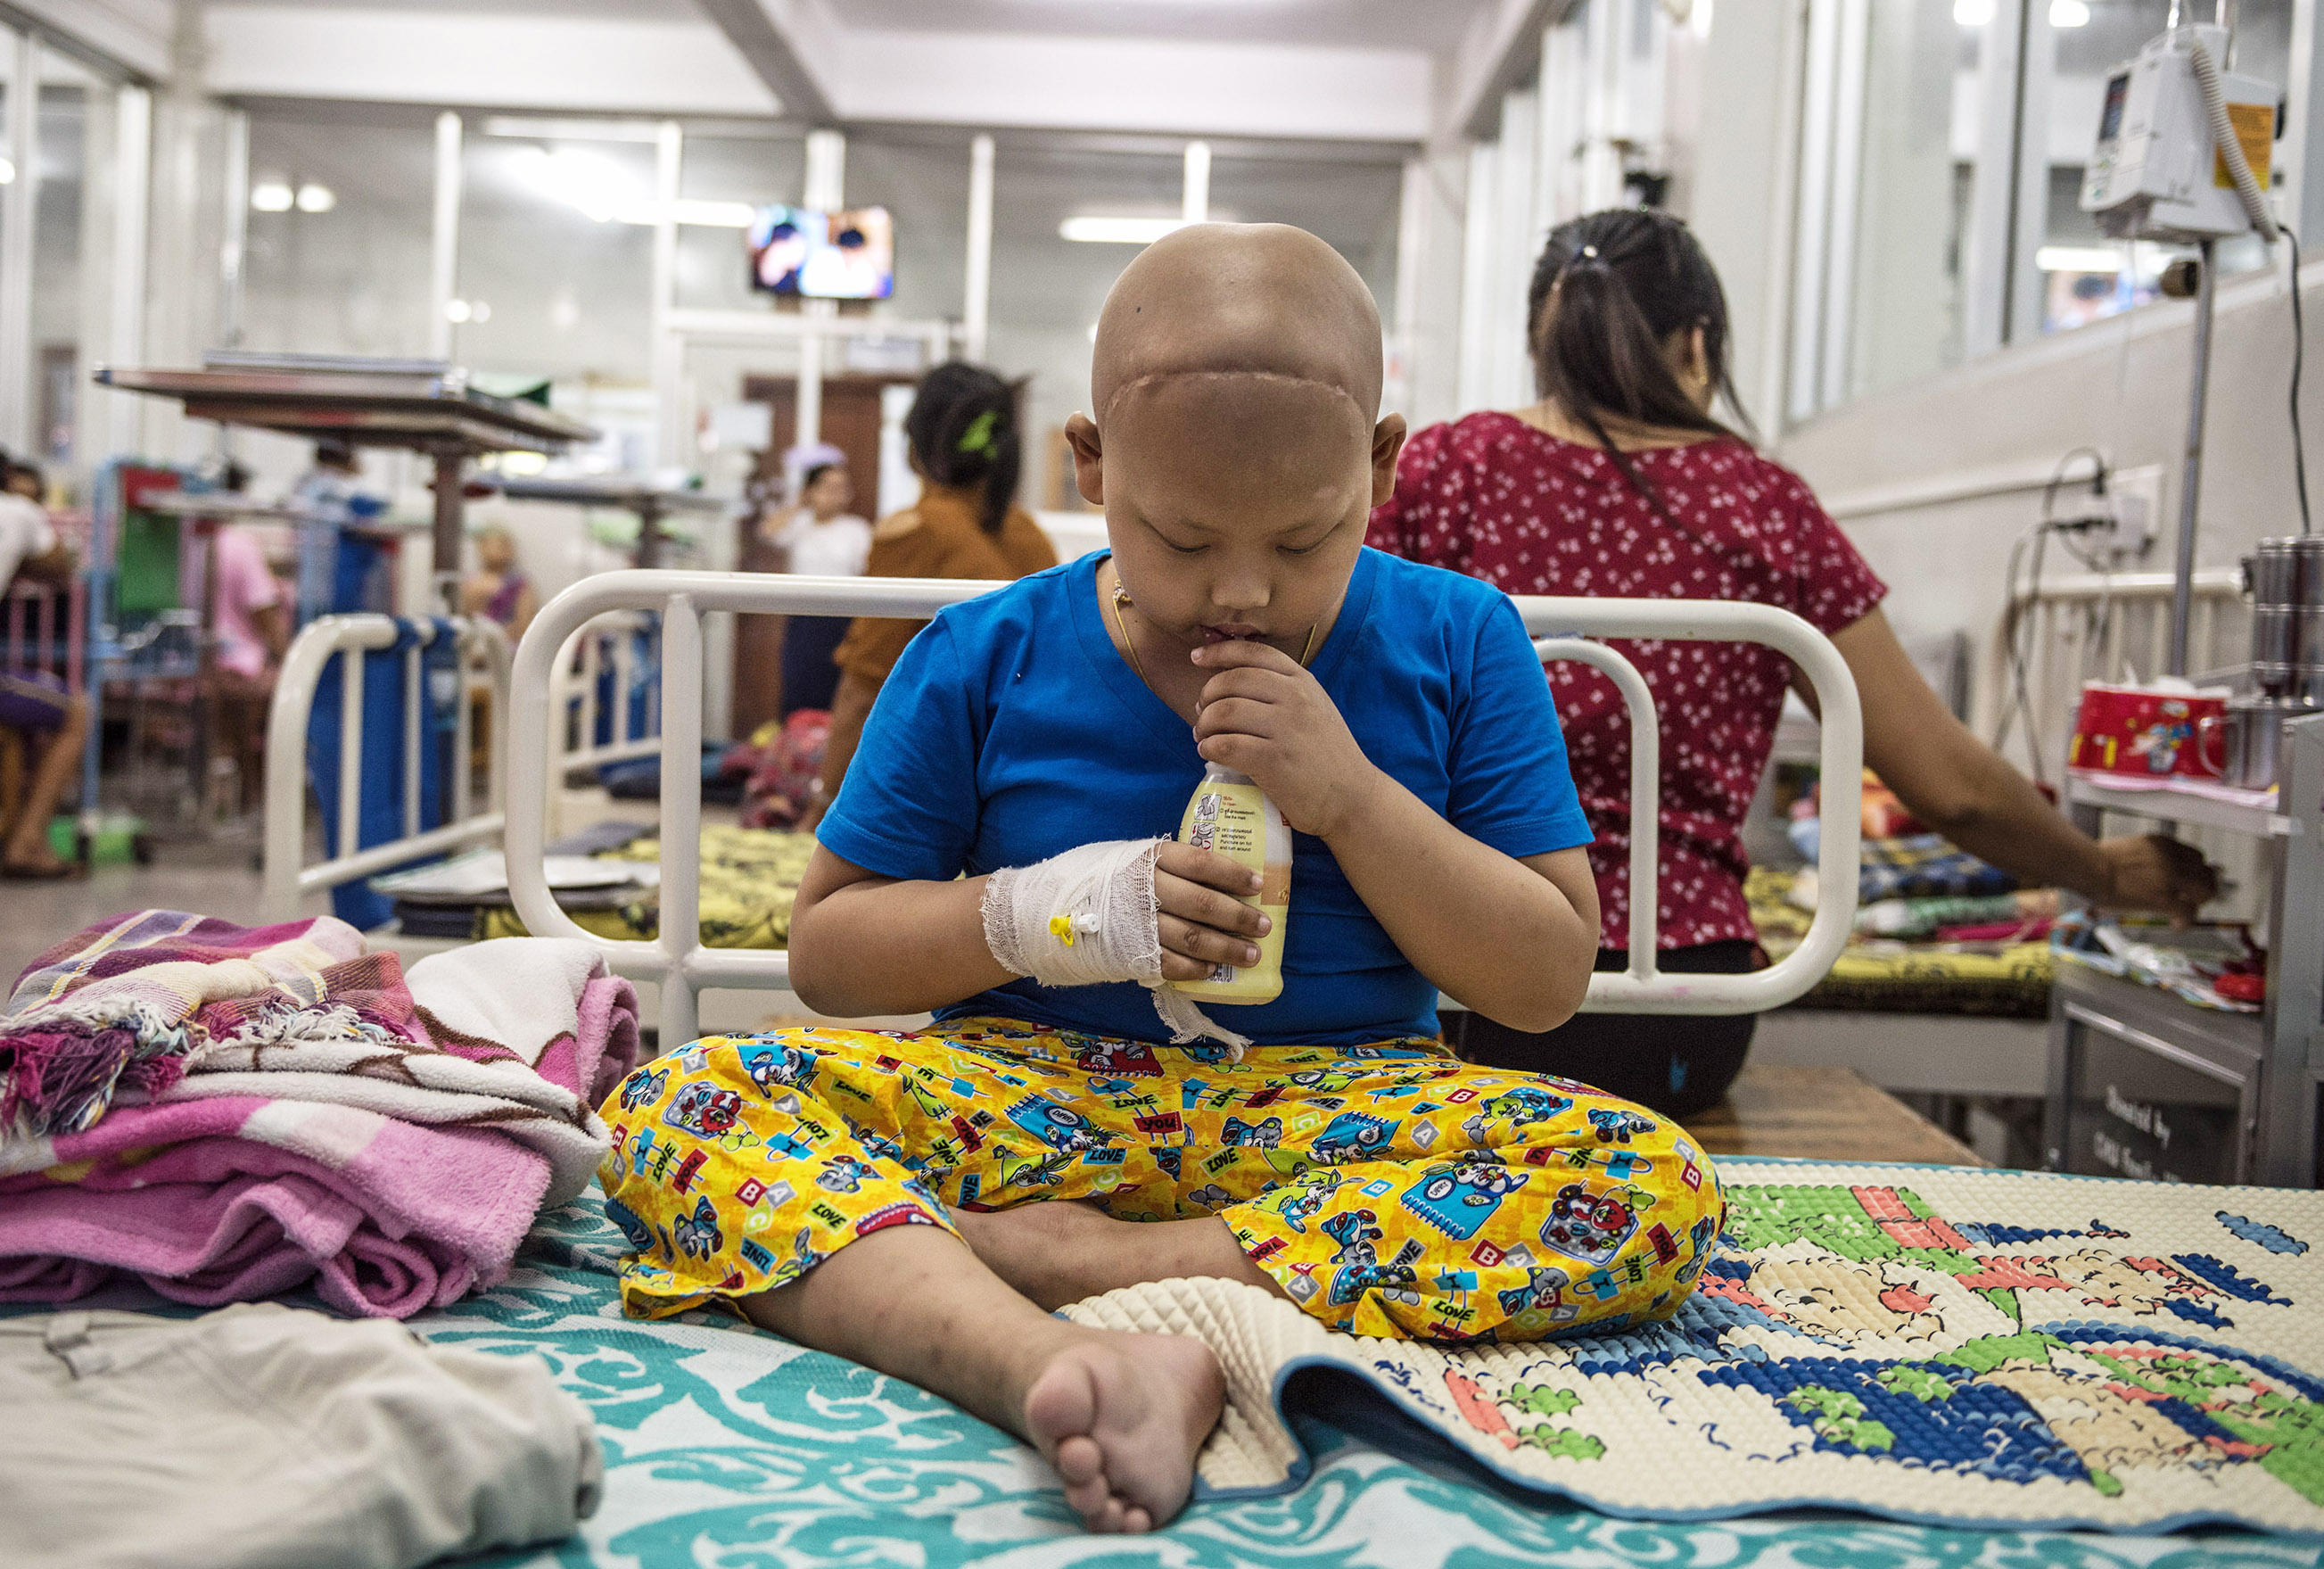 This patient was photographed in the Yangon Children's Hospital in Yangon, Myanmar, a collaborating site with the St. Jude Global network. Please credit Scott A. Woodward for use of this photo.